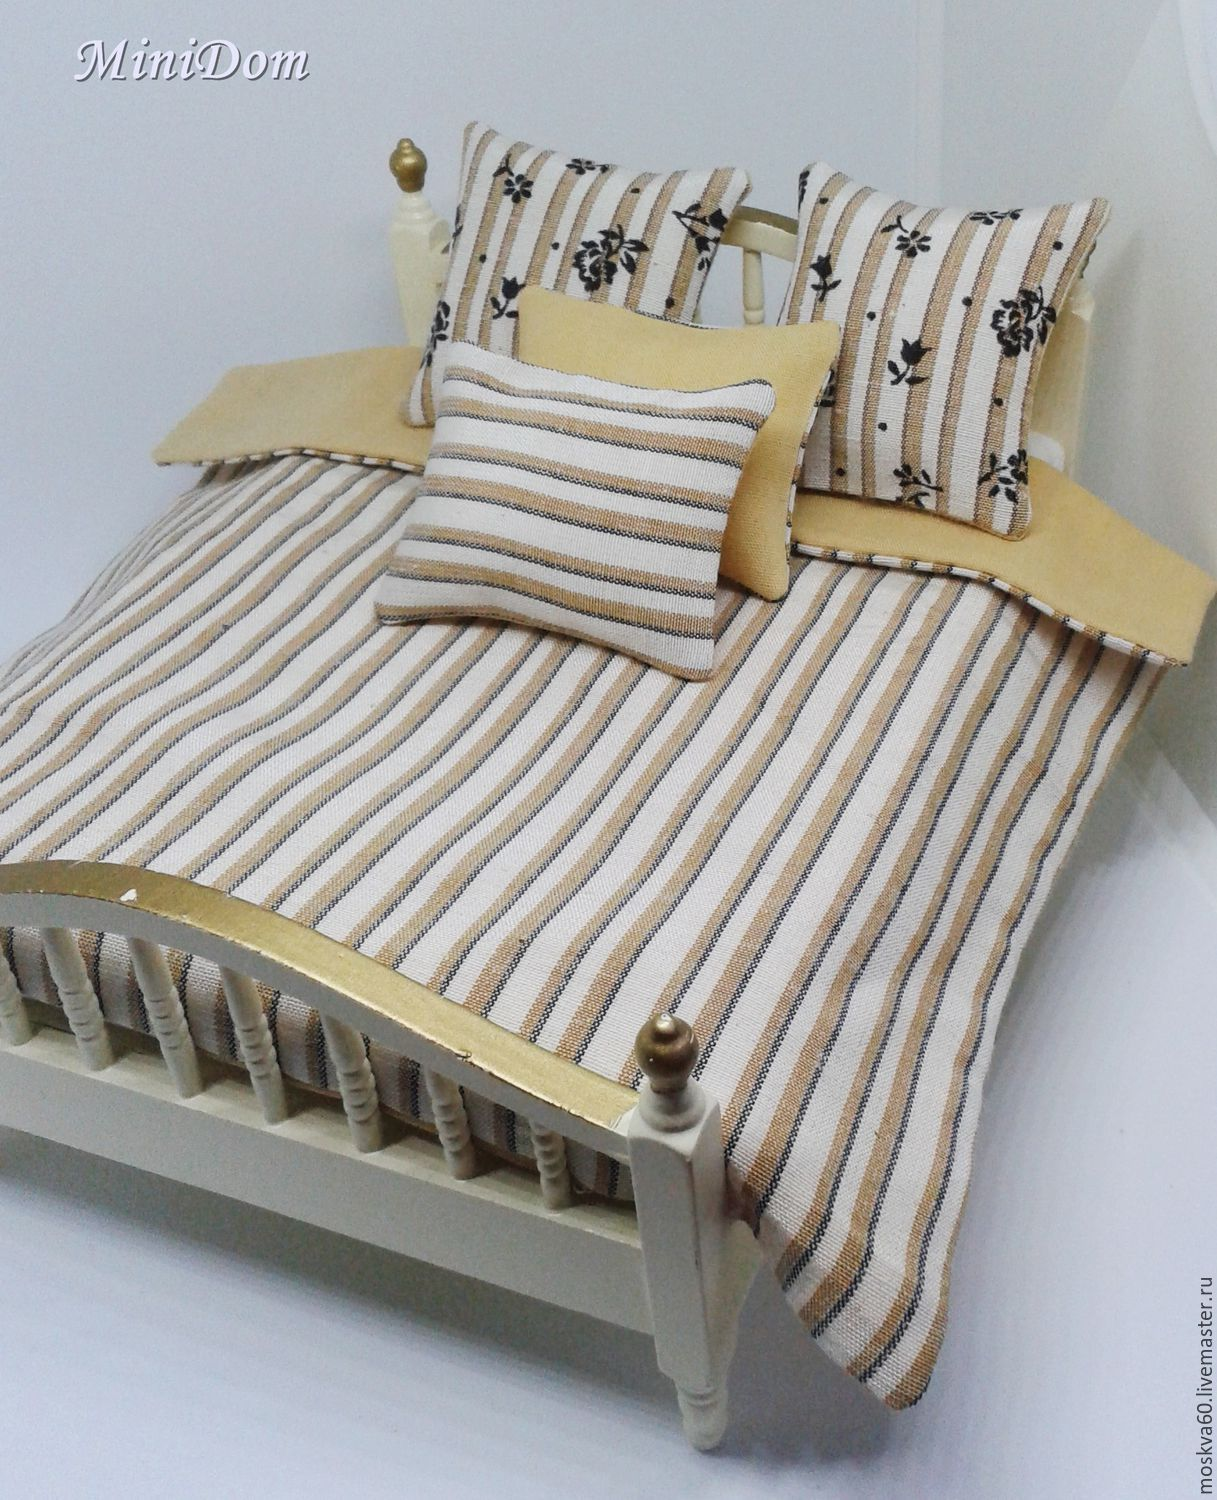 Dollhouse Accessories Bed Cover For Dollhouse Miniature Shop